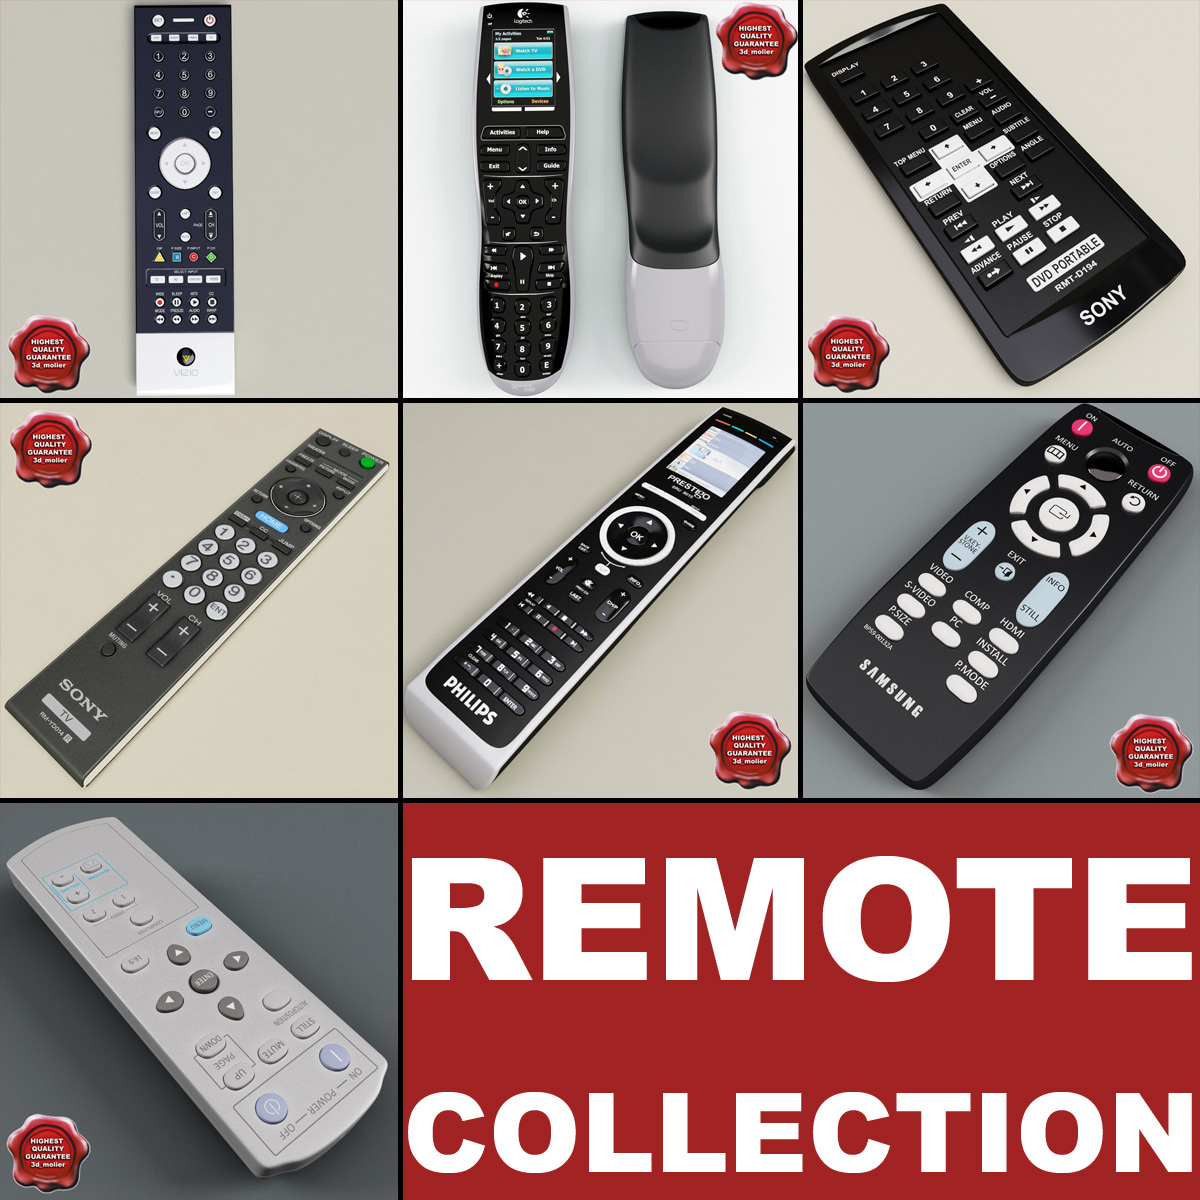 Remotes_Collection_V3_00.jpg